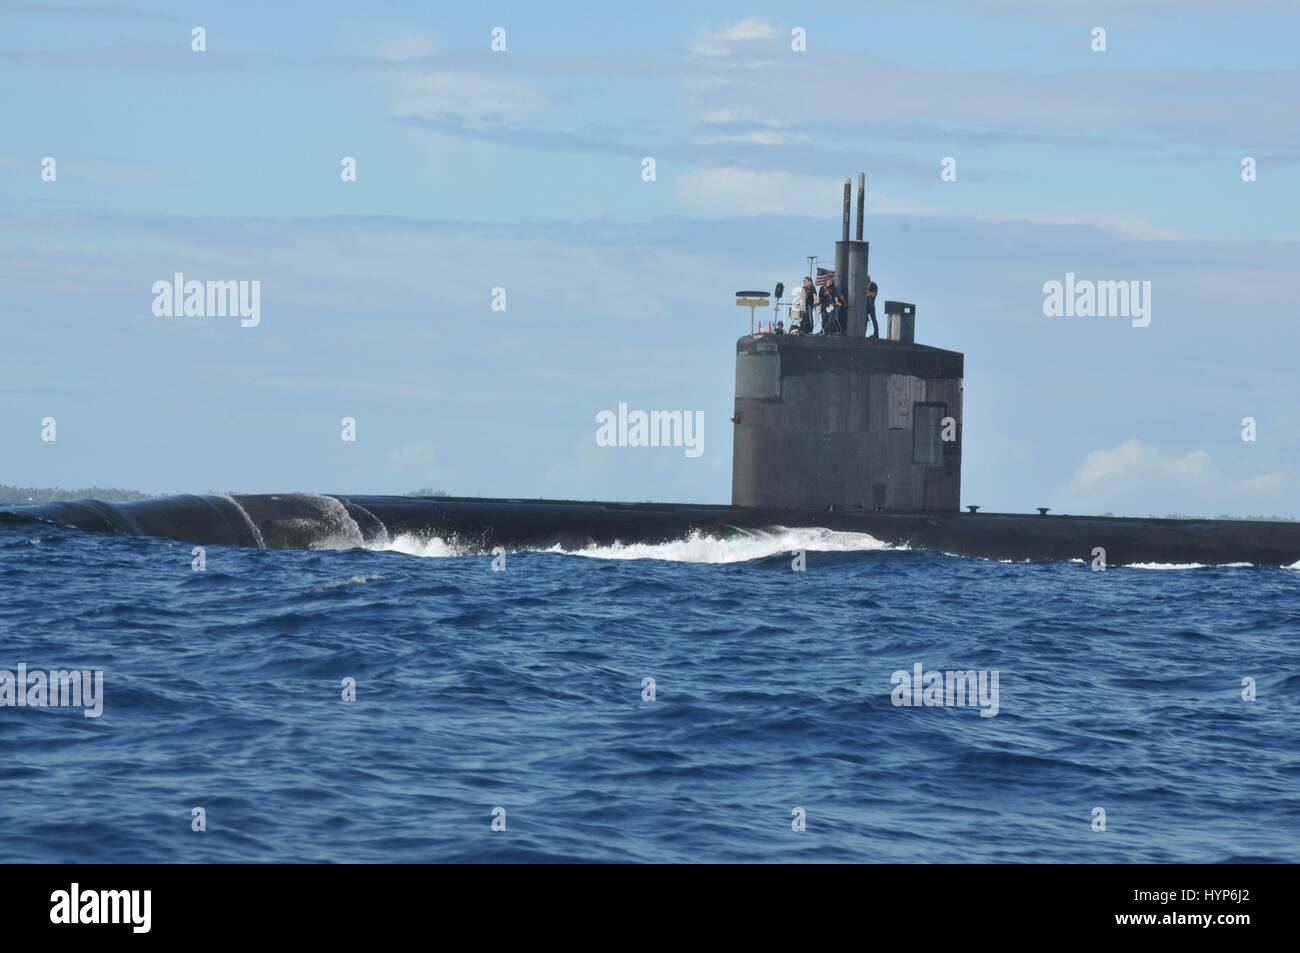 The U.S. Navy Los Angeles-class fast-attack submarine USS Pasadena surfaces as it steams underway March 13, 2017 - Stock Image